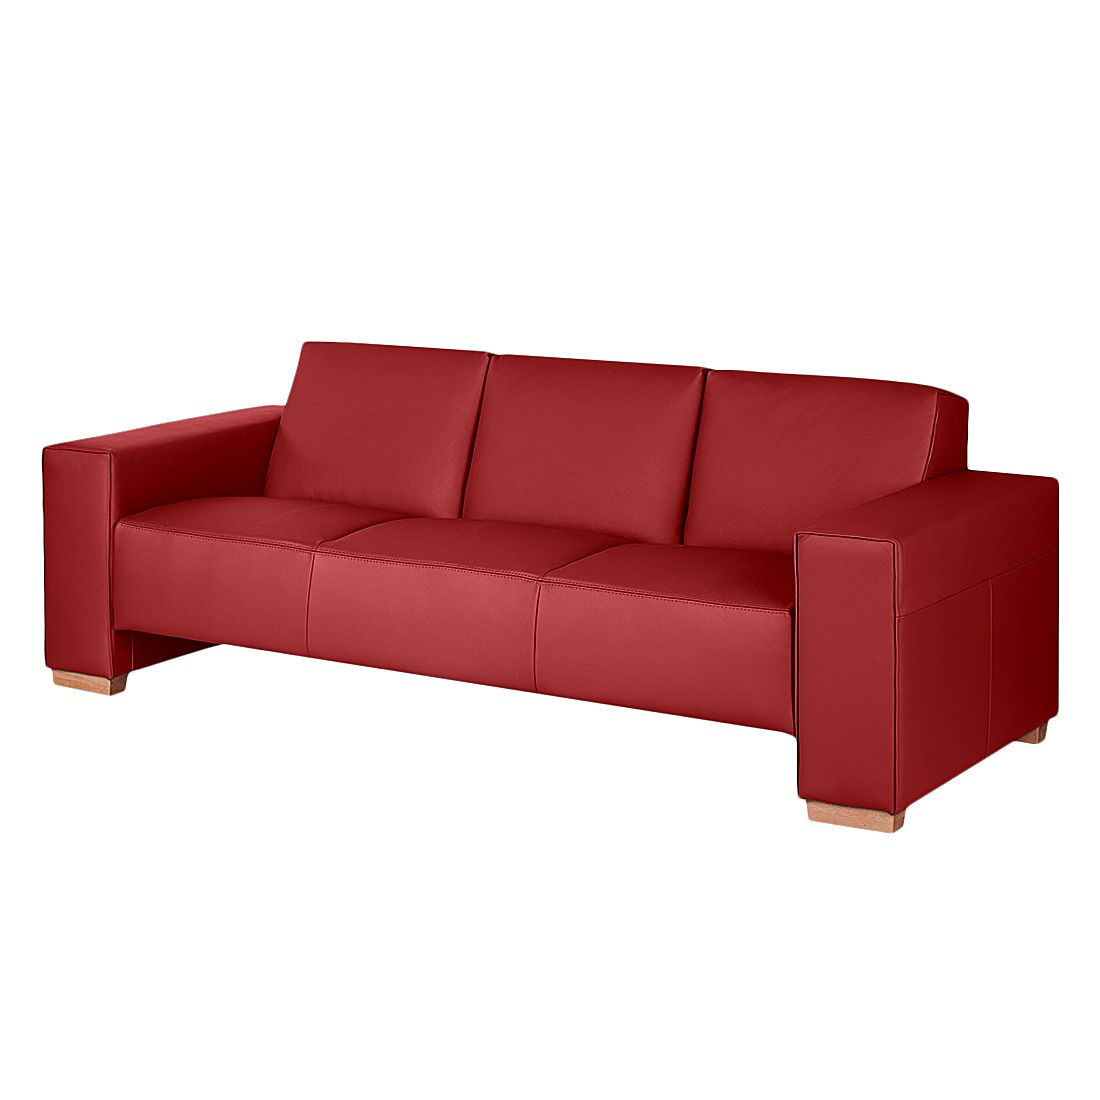 sofa midar 3 sitzer echtleder rot roomscape g nstig. Black Bedroom Furniture Sets. Home Design Ideas